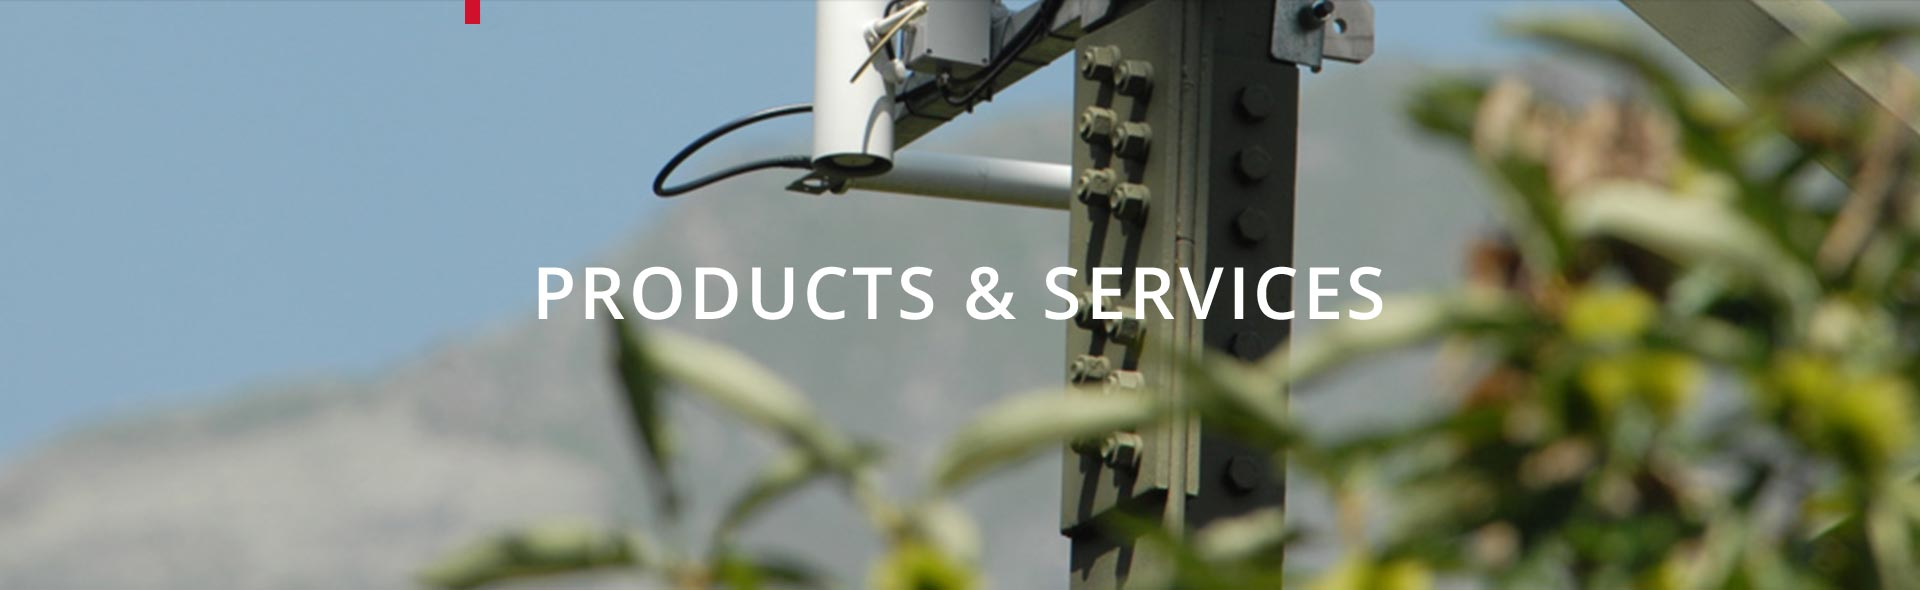 slide product services